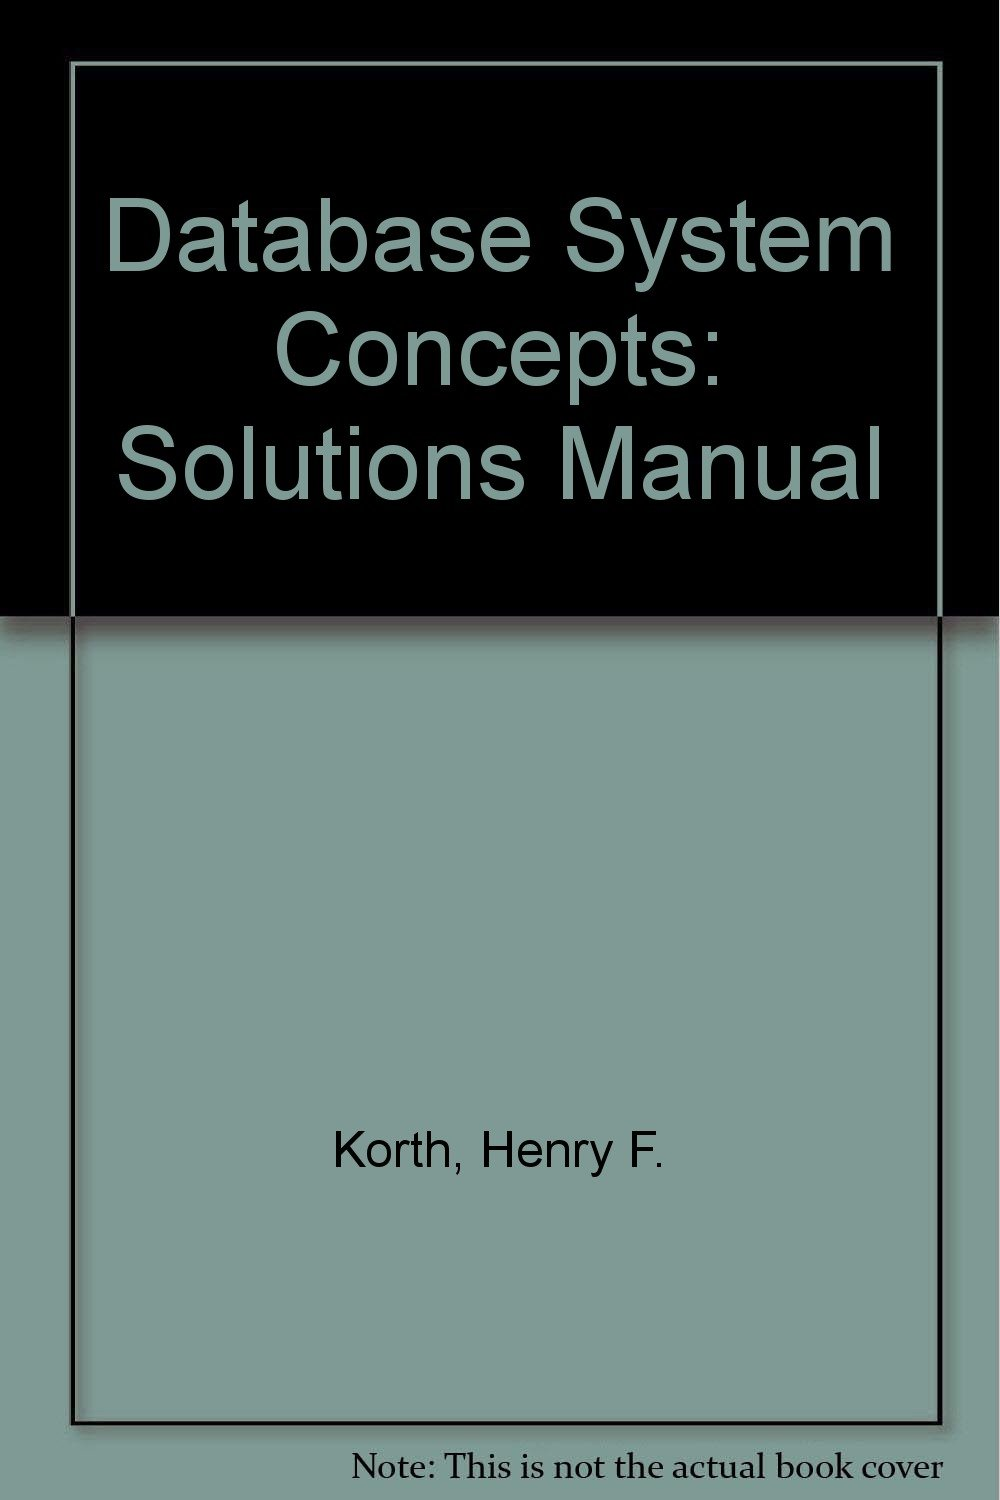 Buy Database System Concepts: Solutions Manual Book Online at Low Prices in  India | Database System Concepts: Solutions Manual Reviews & Ratings -  Amazon.in